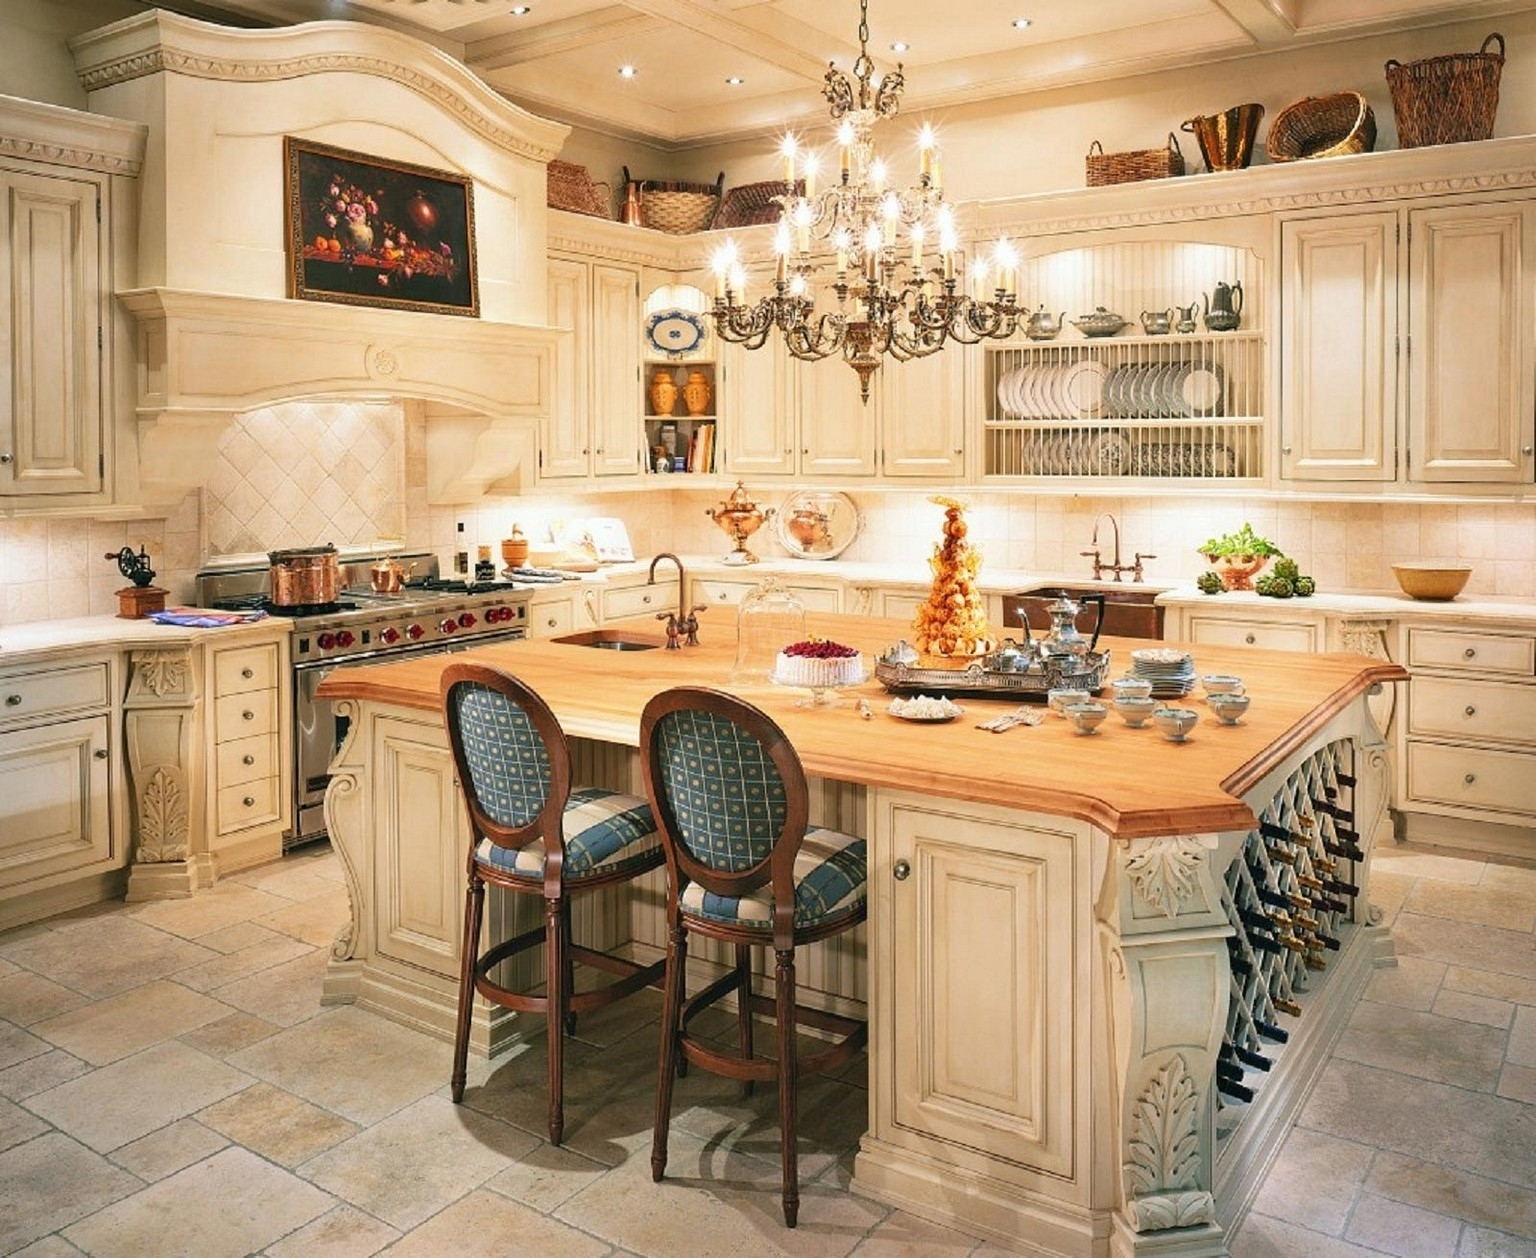 french country kitchens discount replacement kitchen cabinet doors decor visual hunt around the world